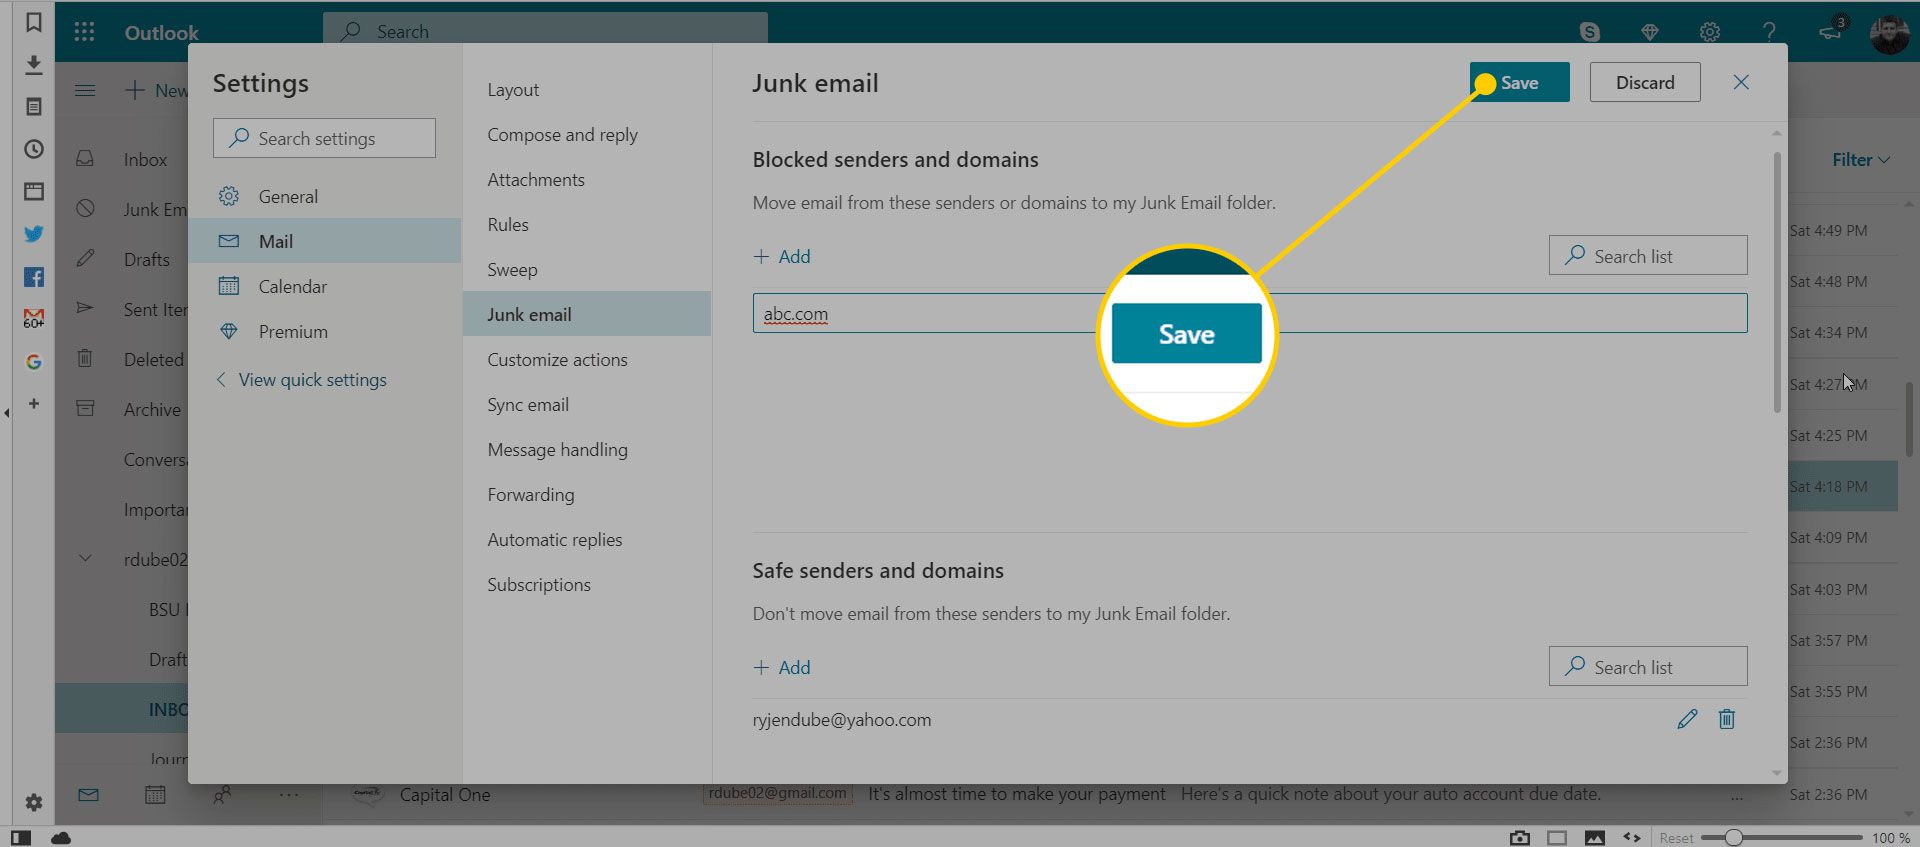 Junk Email settings in Outlook with the Save button highlighted